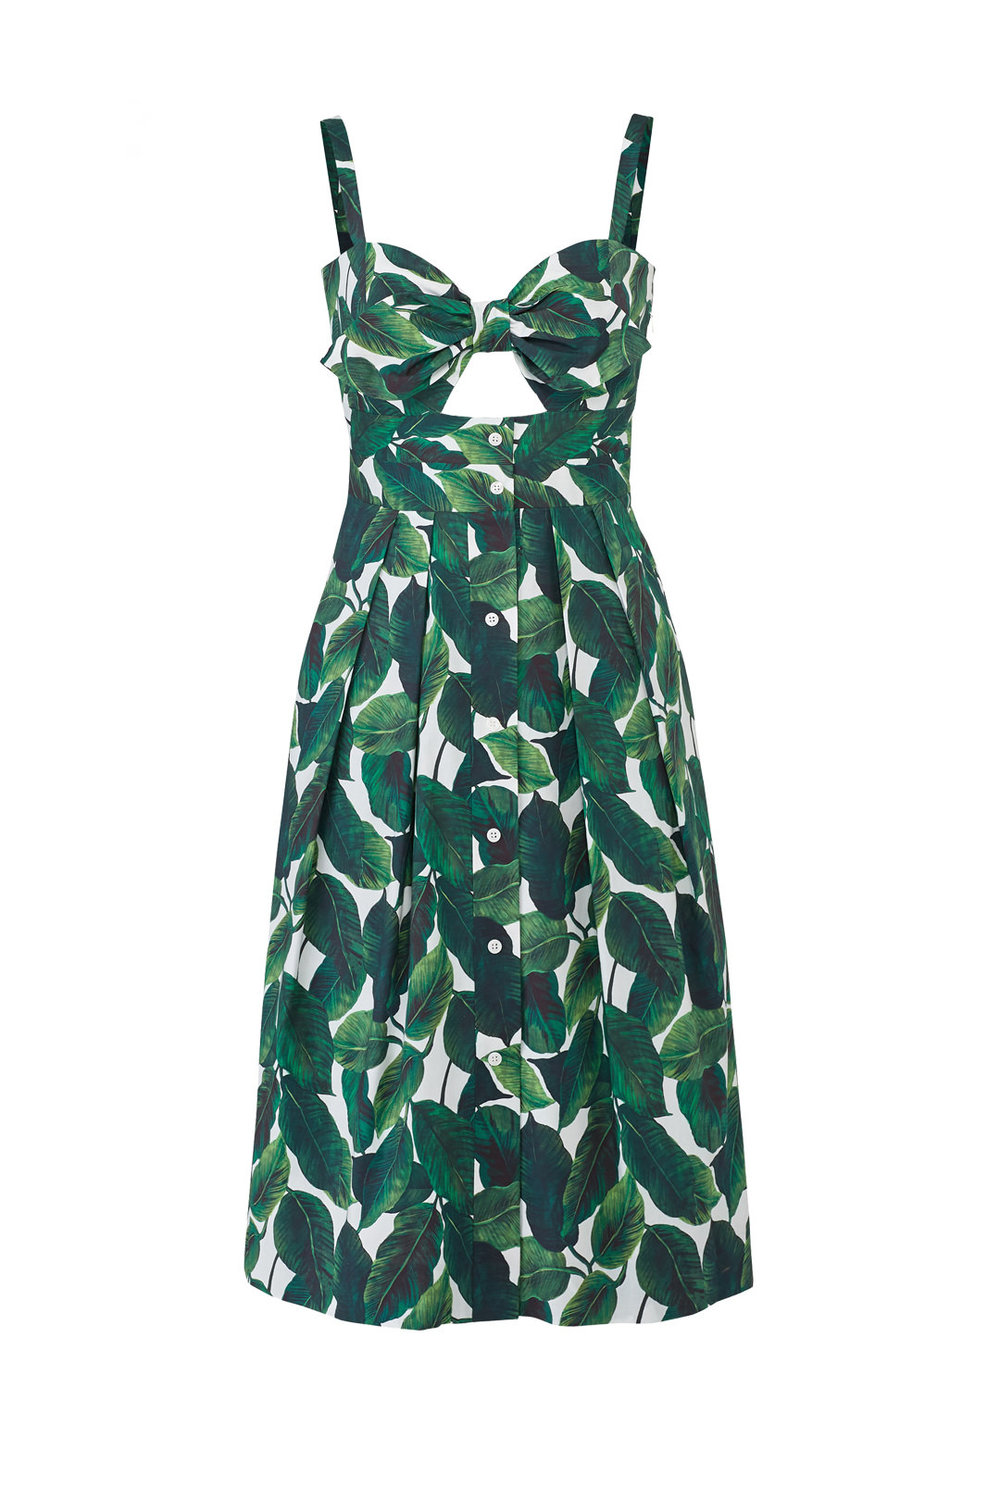 Milly Jordan Banana Leaf Dress Milly Banana Leaf Dress from Rent the Runway featured by top US fashion blog, The Borrowed Babes - Banana Leaf Trend